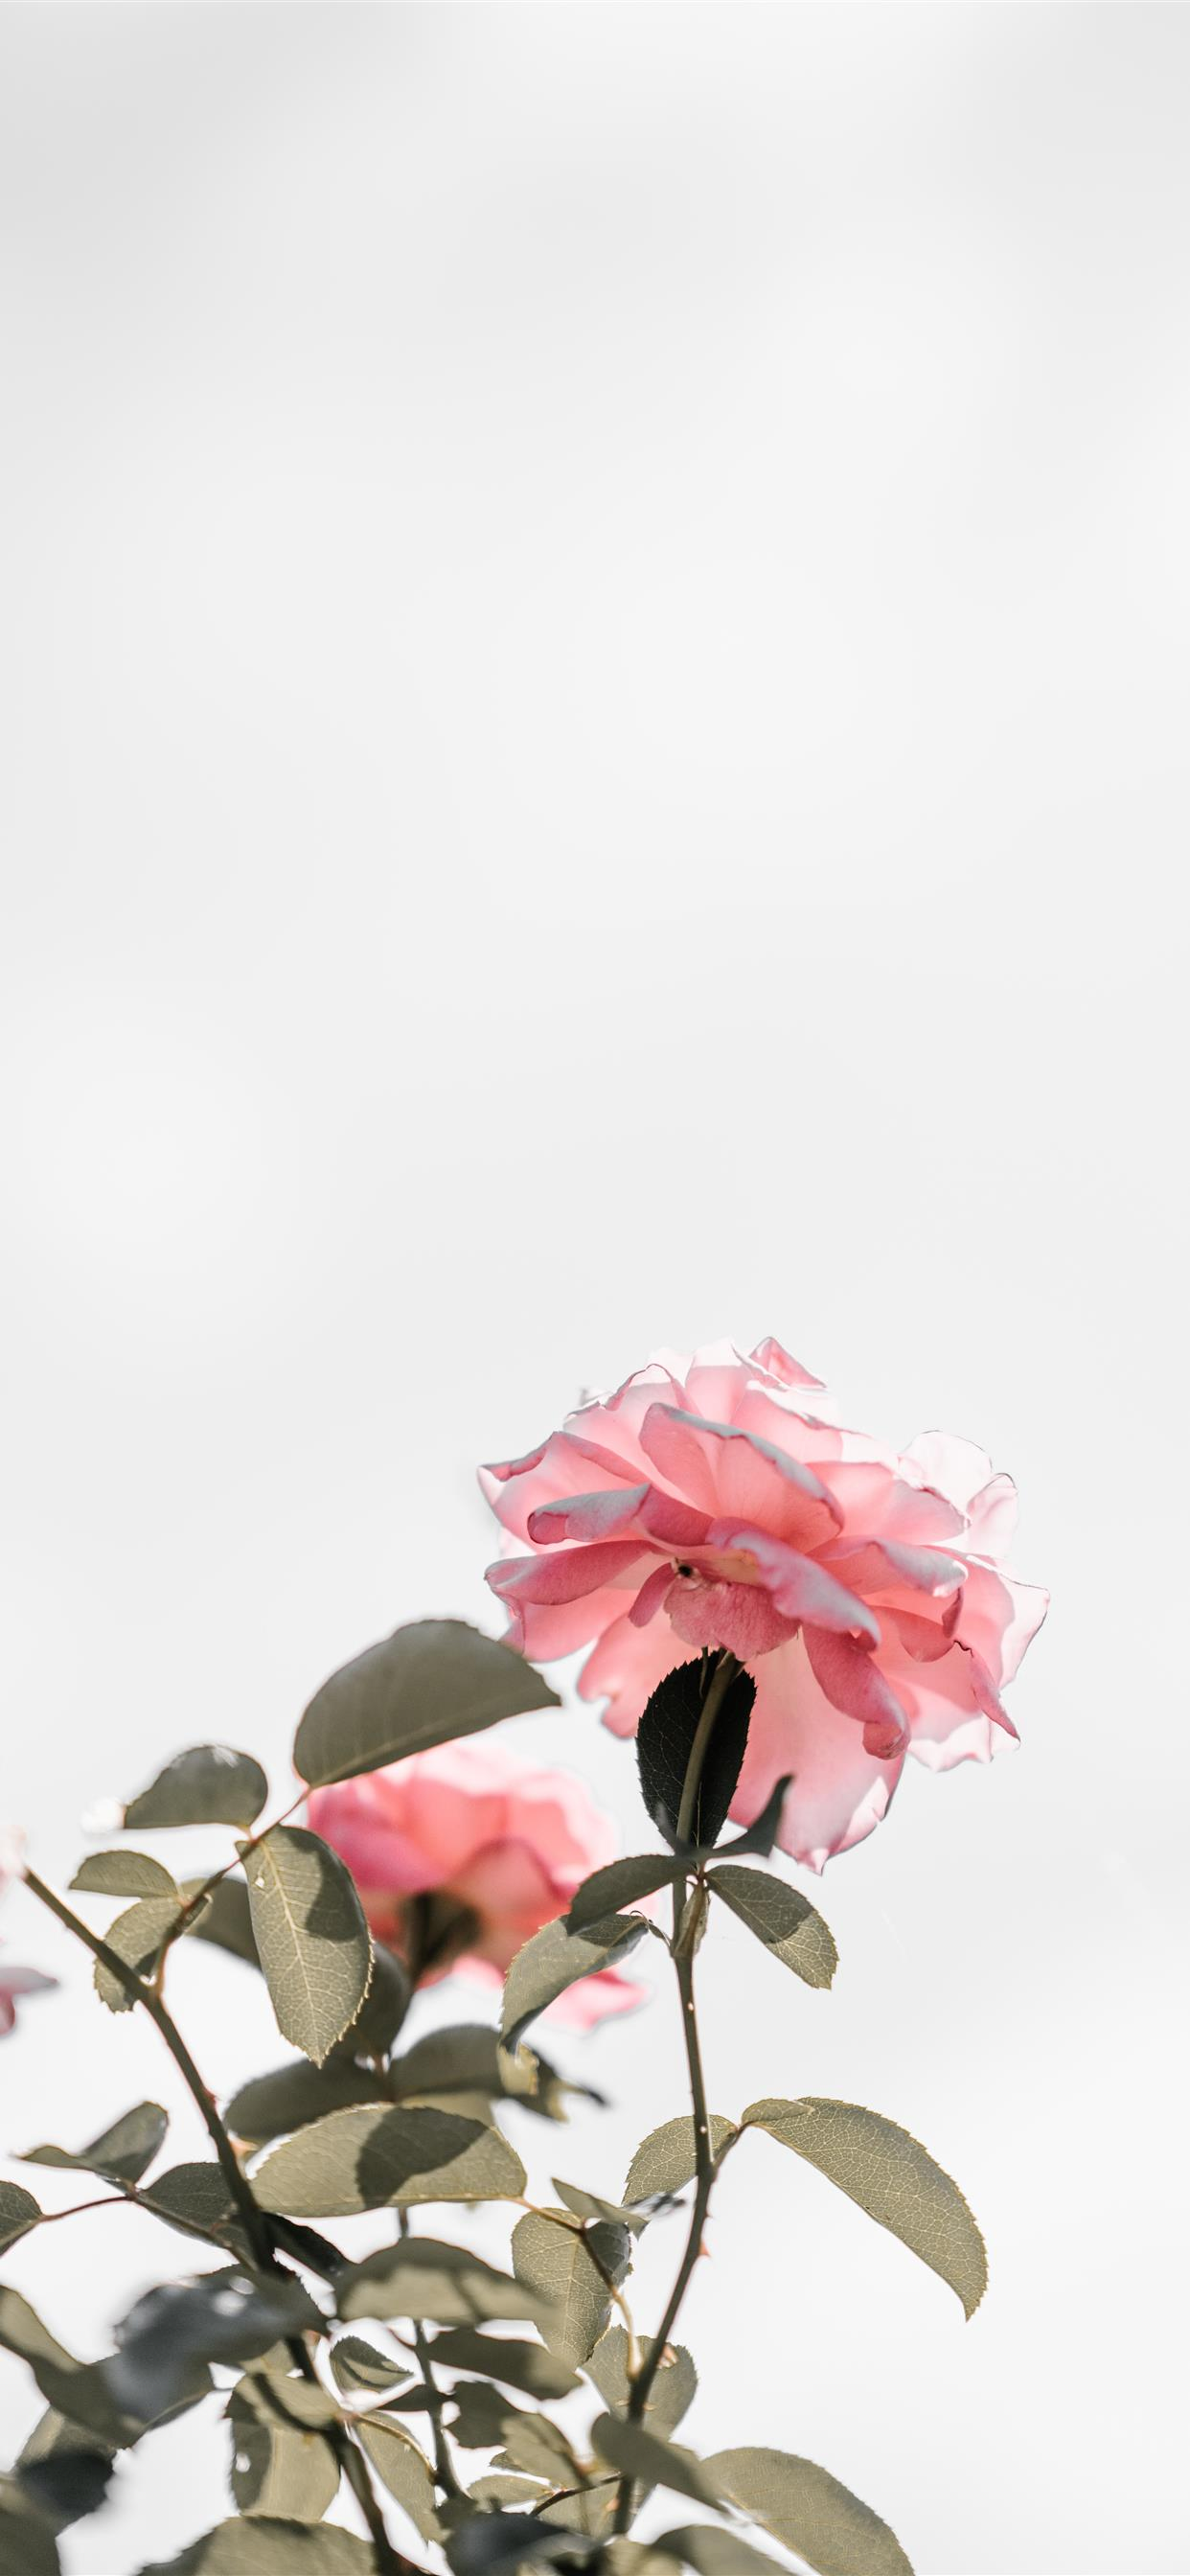 Pink Roses With Blank Space Light Iphone X Wallpapers Free Download